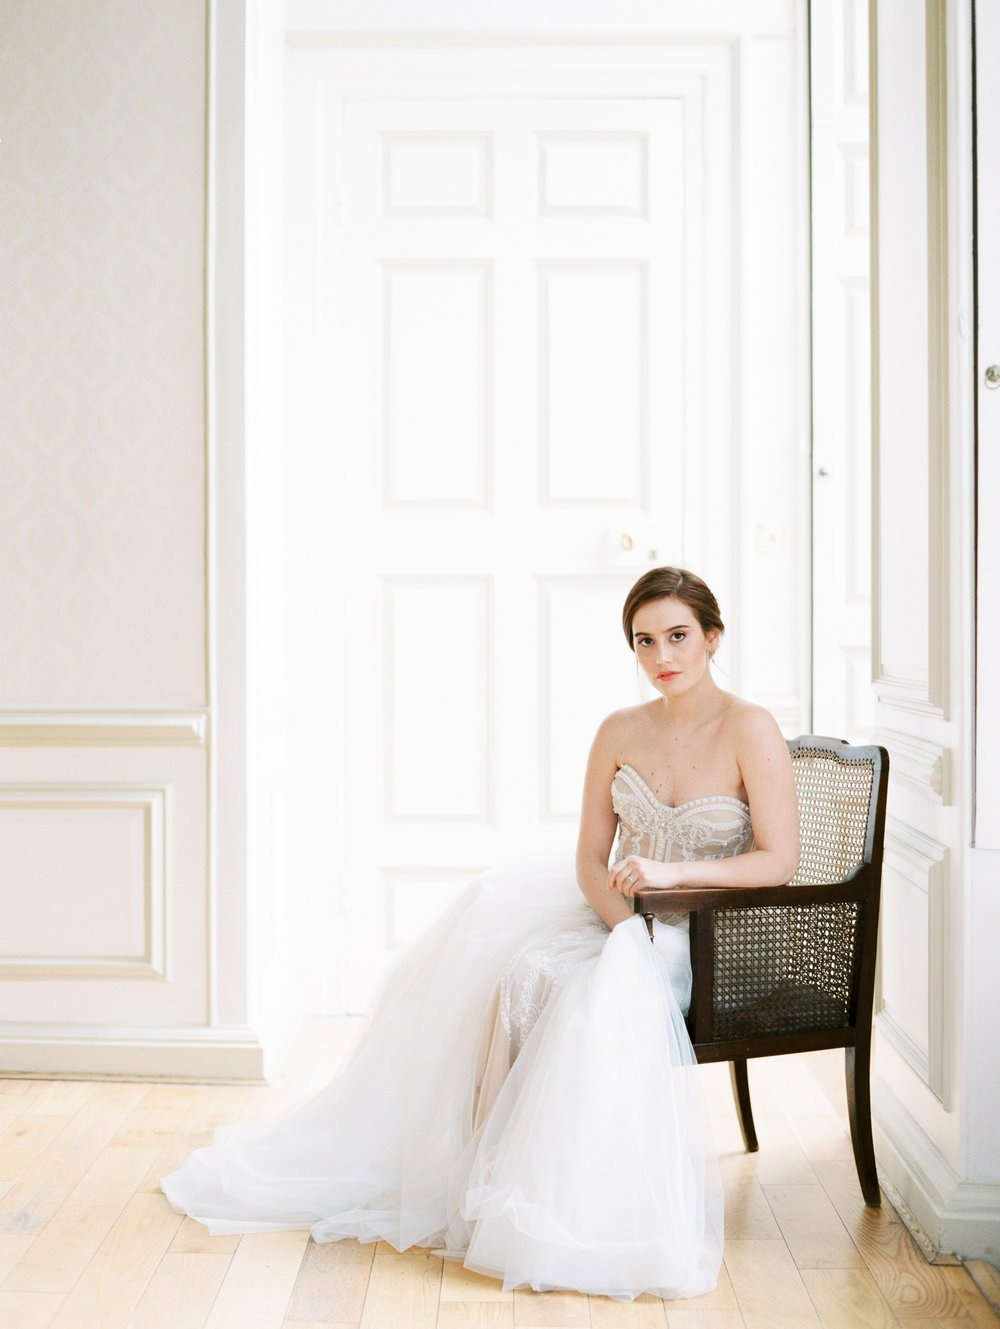 The Timeless Stylist-Antique Chair-Stately Home Fine Art Wedding